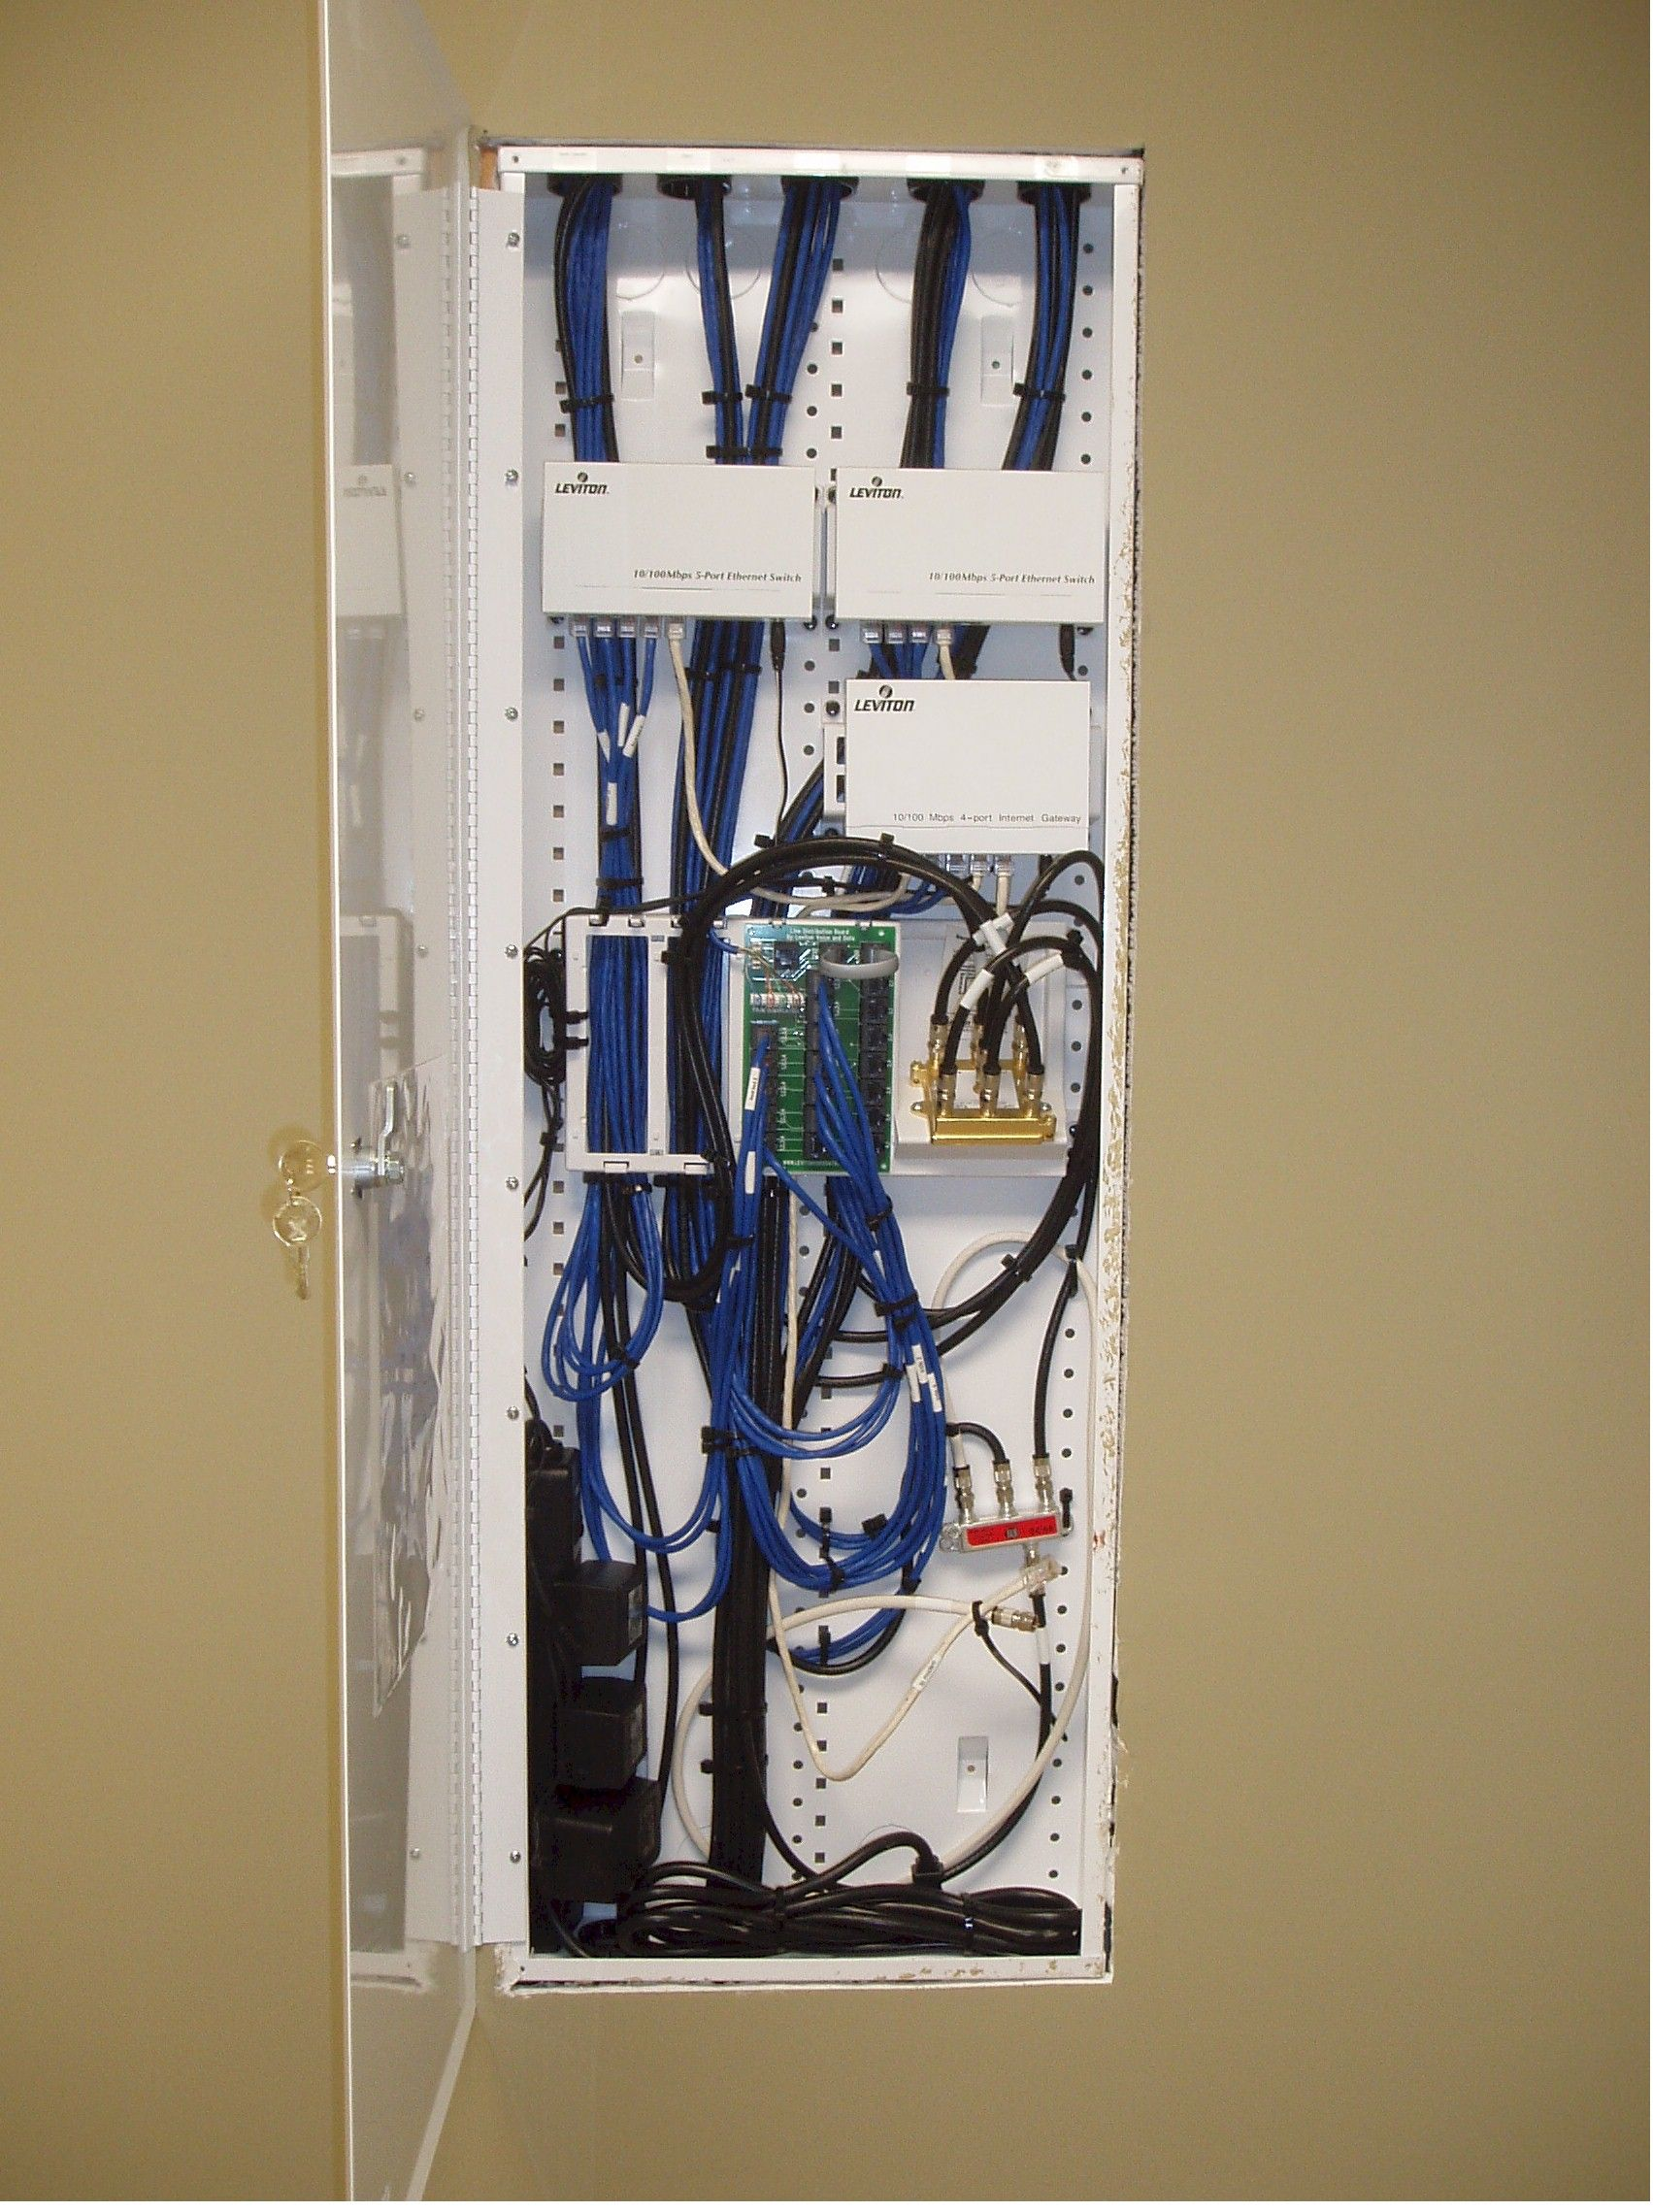 pin by colleen mccurley on household hints, decor \u0026 organization Wiring Under Cabinet structured wiring cabinet www homecontrols com main